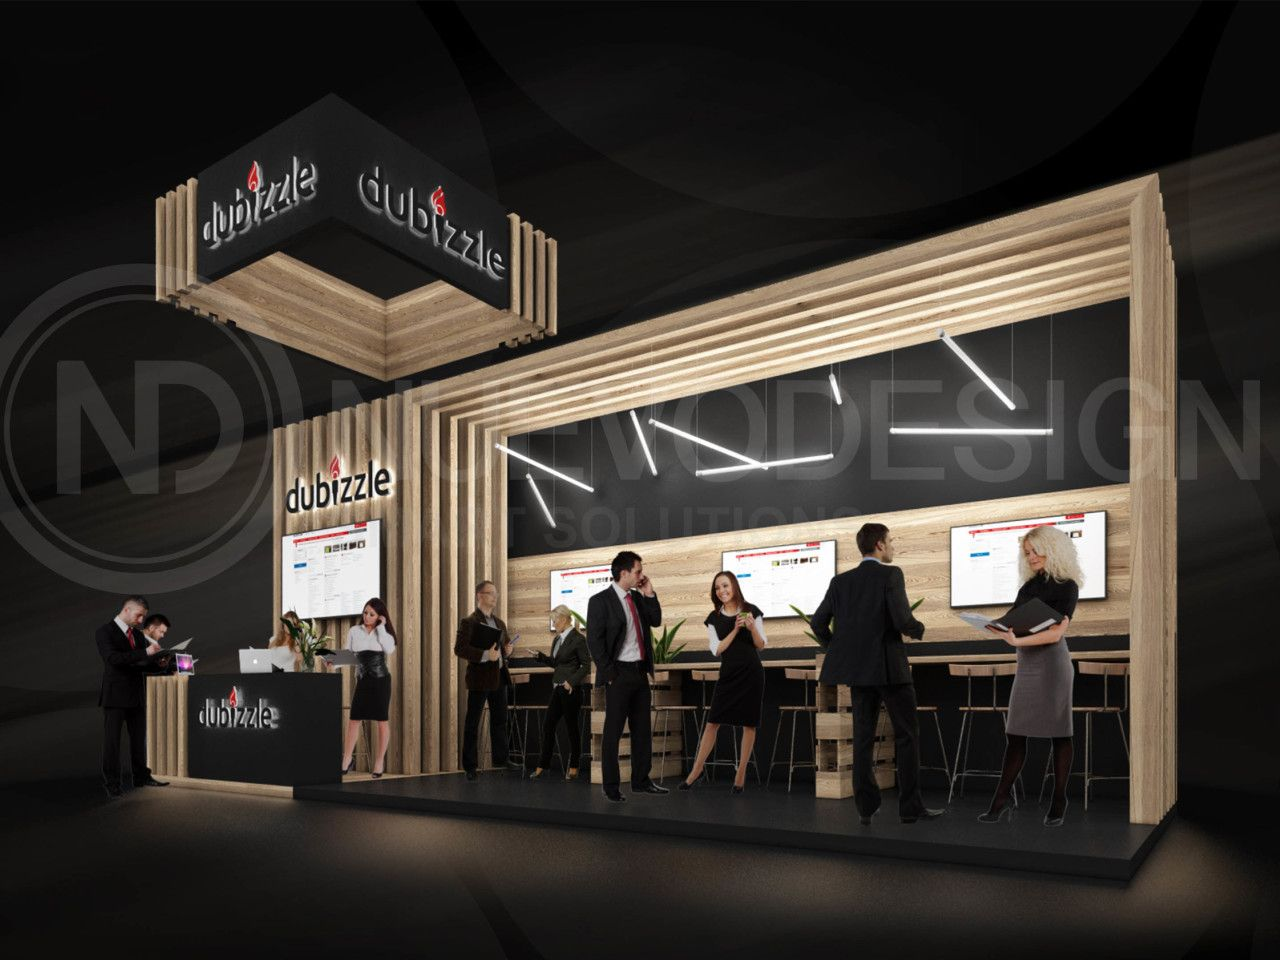 Nuevodesign Wp Content Uploads 2015 07 Exhibition Stand Design Dubai Nuevo Design70 1280x960